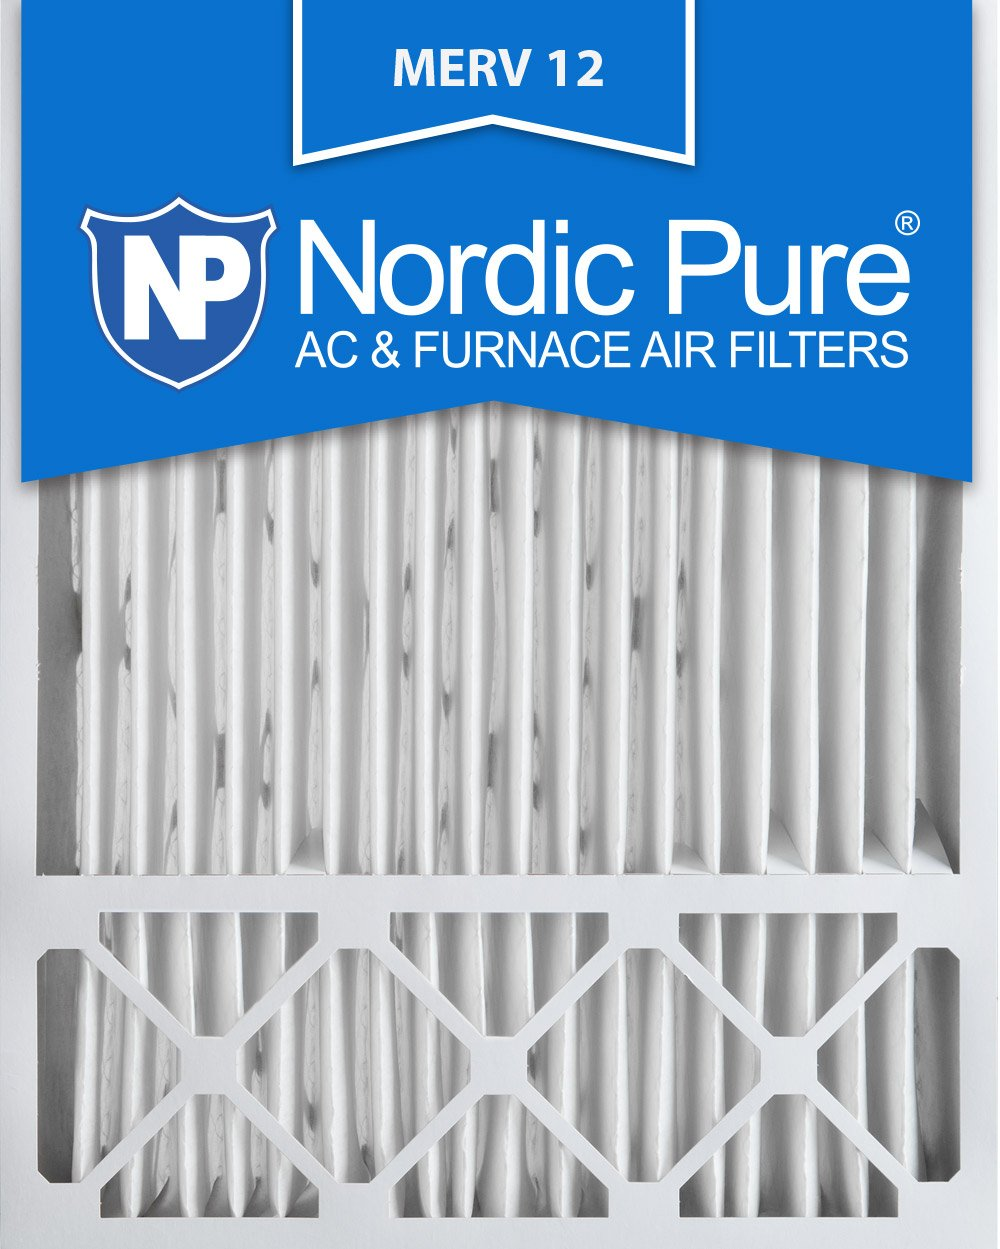 Nordic Pure 20x25x4/20x25x5 (19 5/8 x 19 7/8 x 4 3/8) Honeywell FC100A1037 Replacement Pleated AC Furnace Air Filters MERV 12, Box of 1